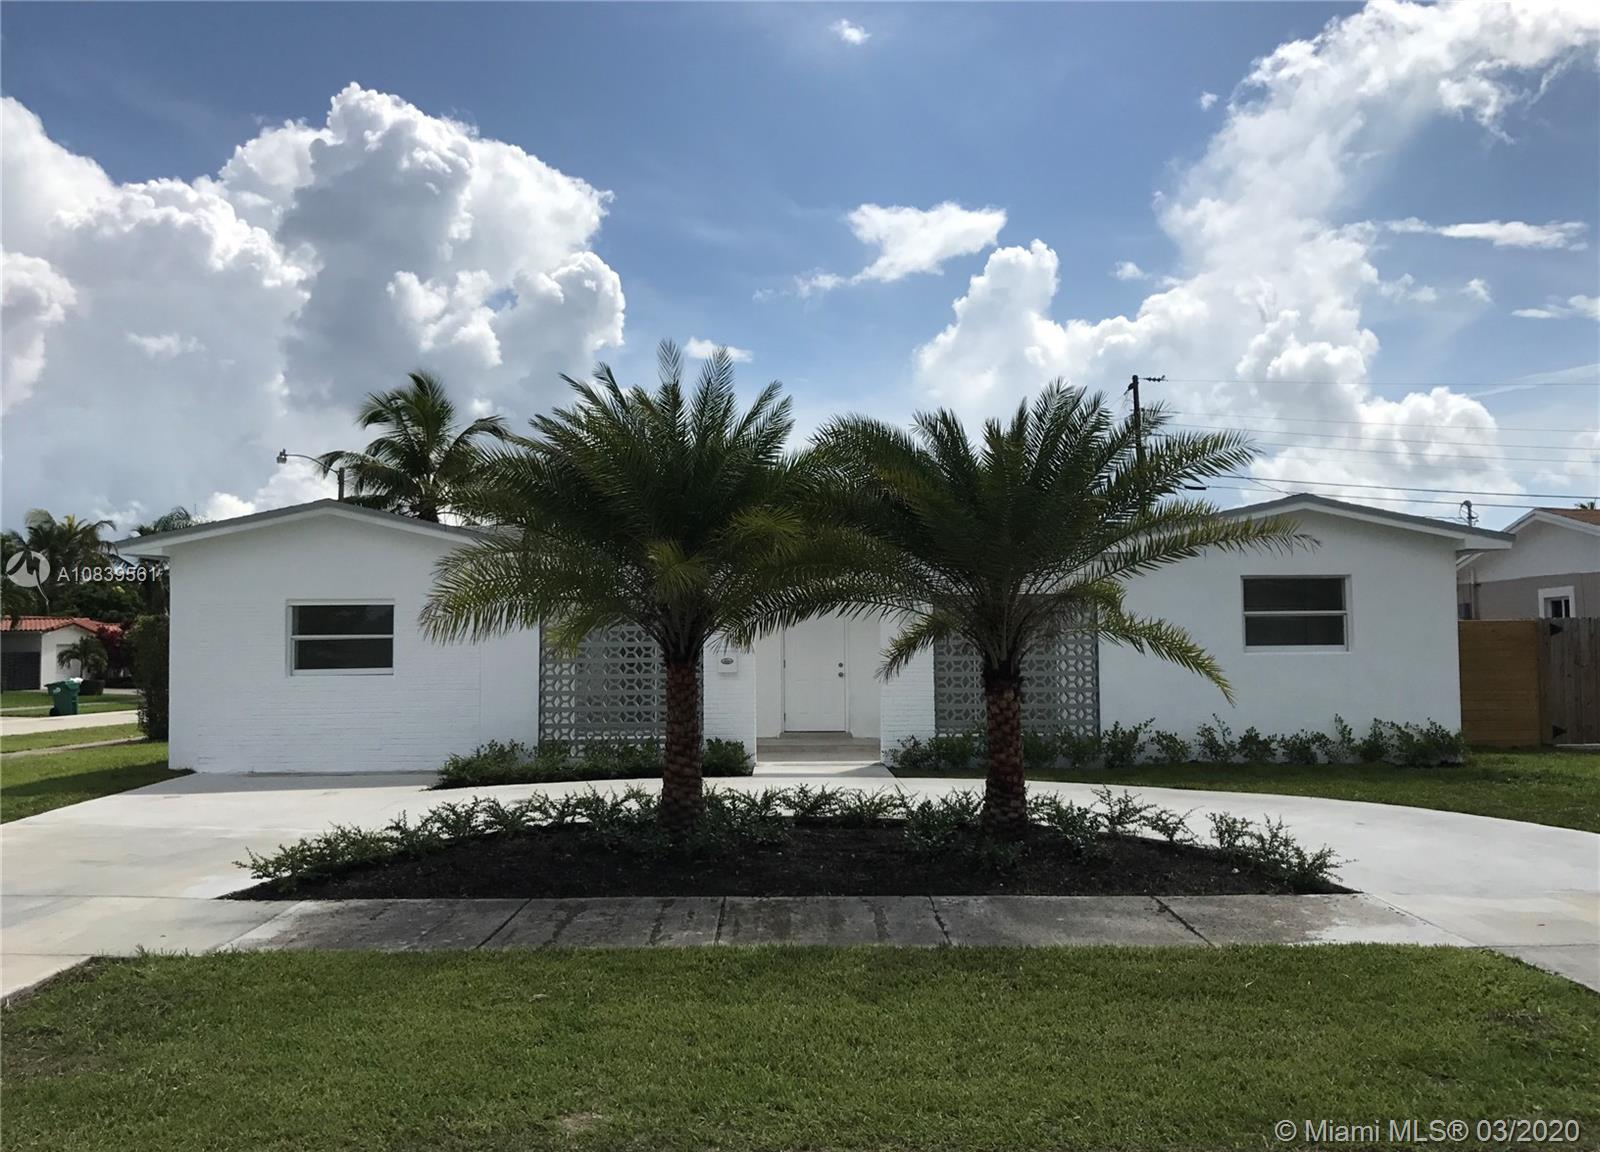 6001 SW 93rd Ct, Miami, Florida 33173, 4 Bedrooms Bedrooms, ,2 BathroomsBathrooms,Residential,For Sale,6001 SW 93rd Ct,A10839561